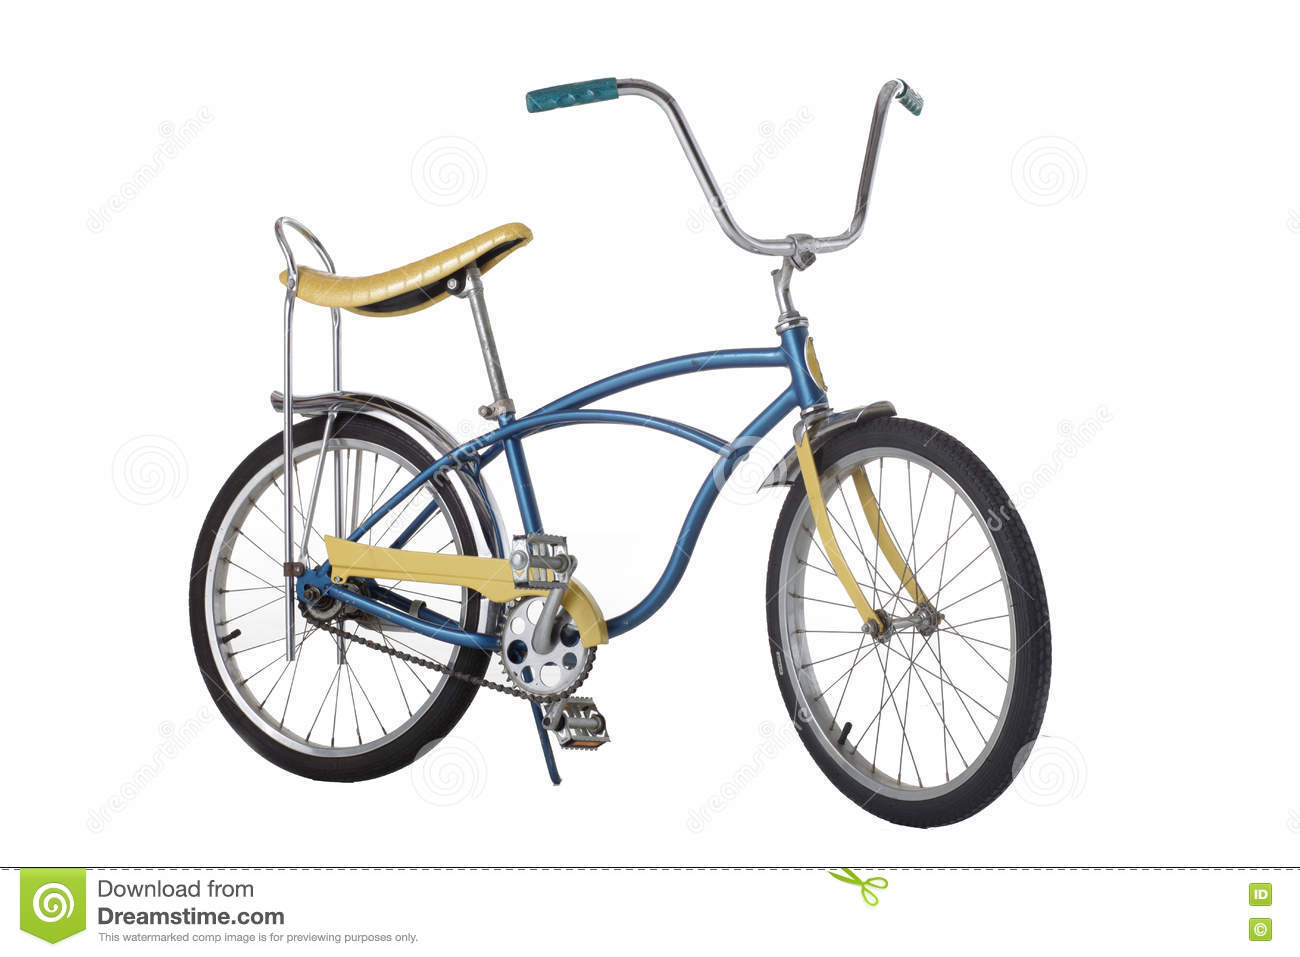 Vintage 1970s bicycle with banana seat. isolated on white background